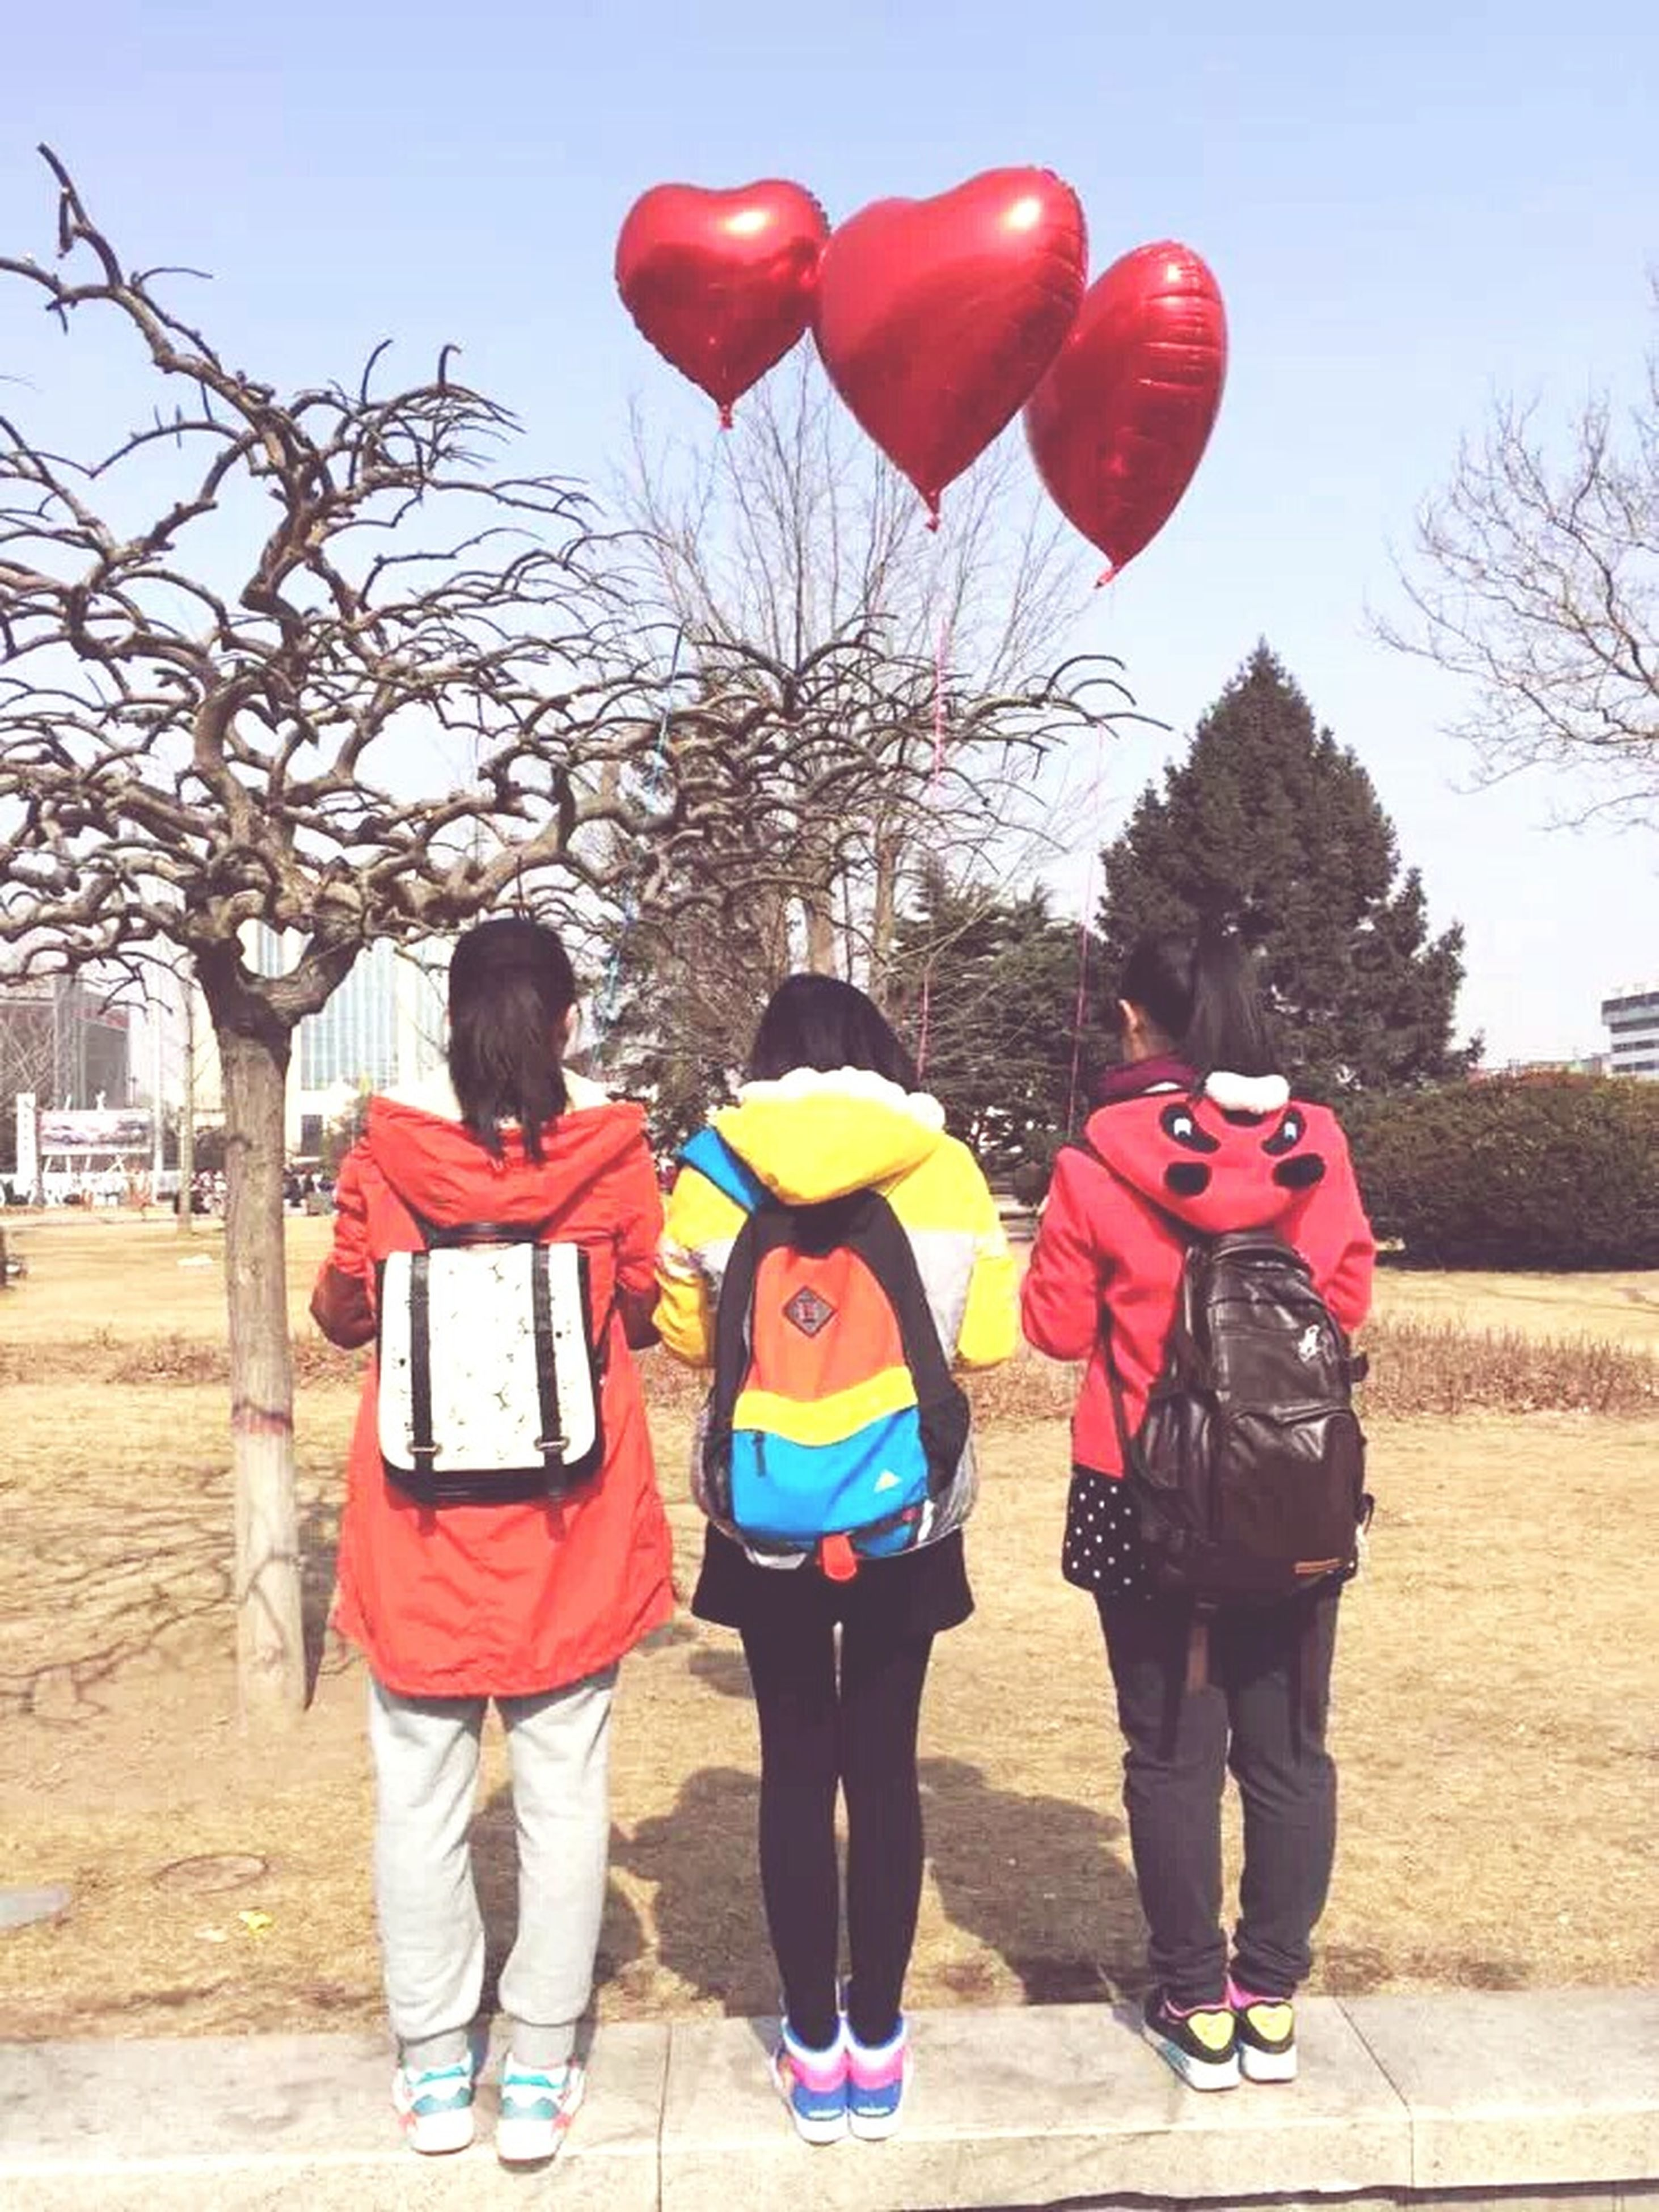 lifestyles, rear view, leisure activity, men, full length, casual clothing, togetherness, celebration, walking, person, standing, tree, balloon, red, cultures, umbrella, sky, clear sky